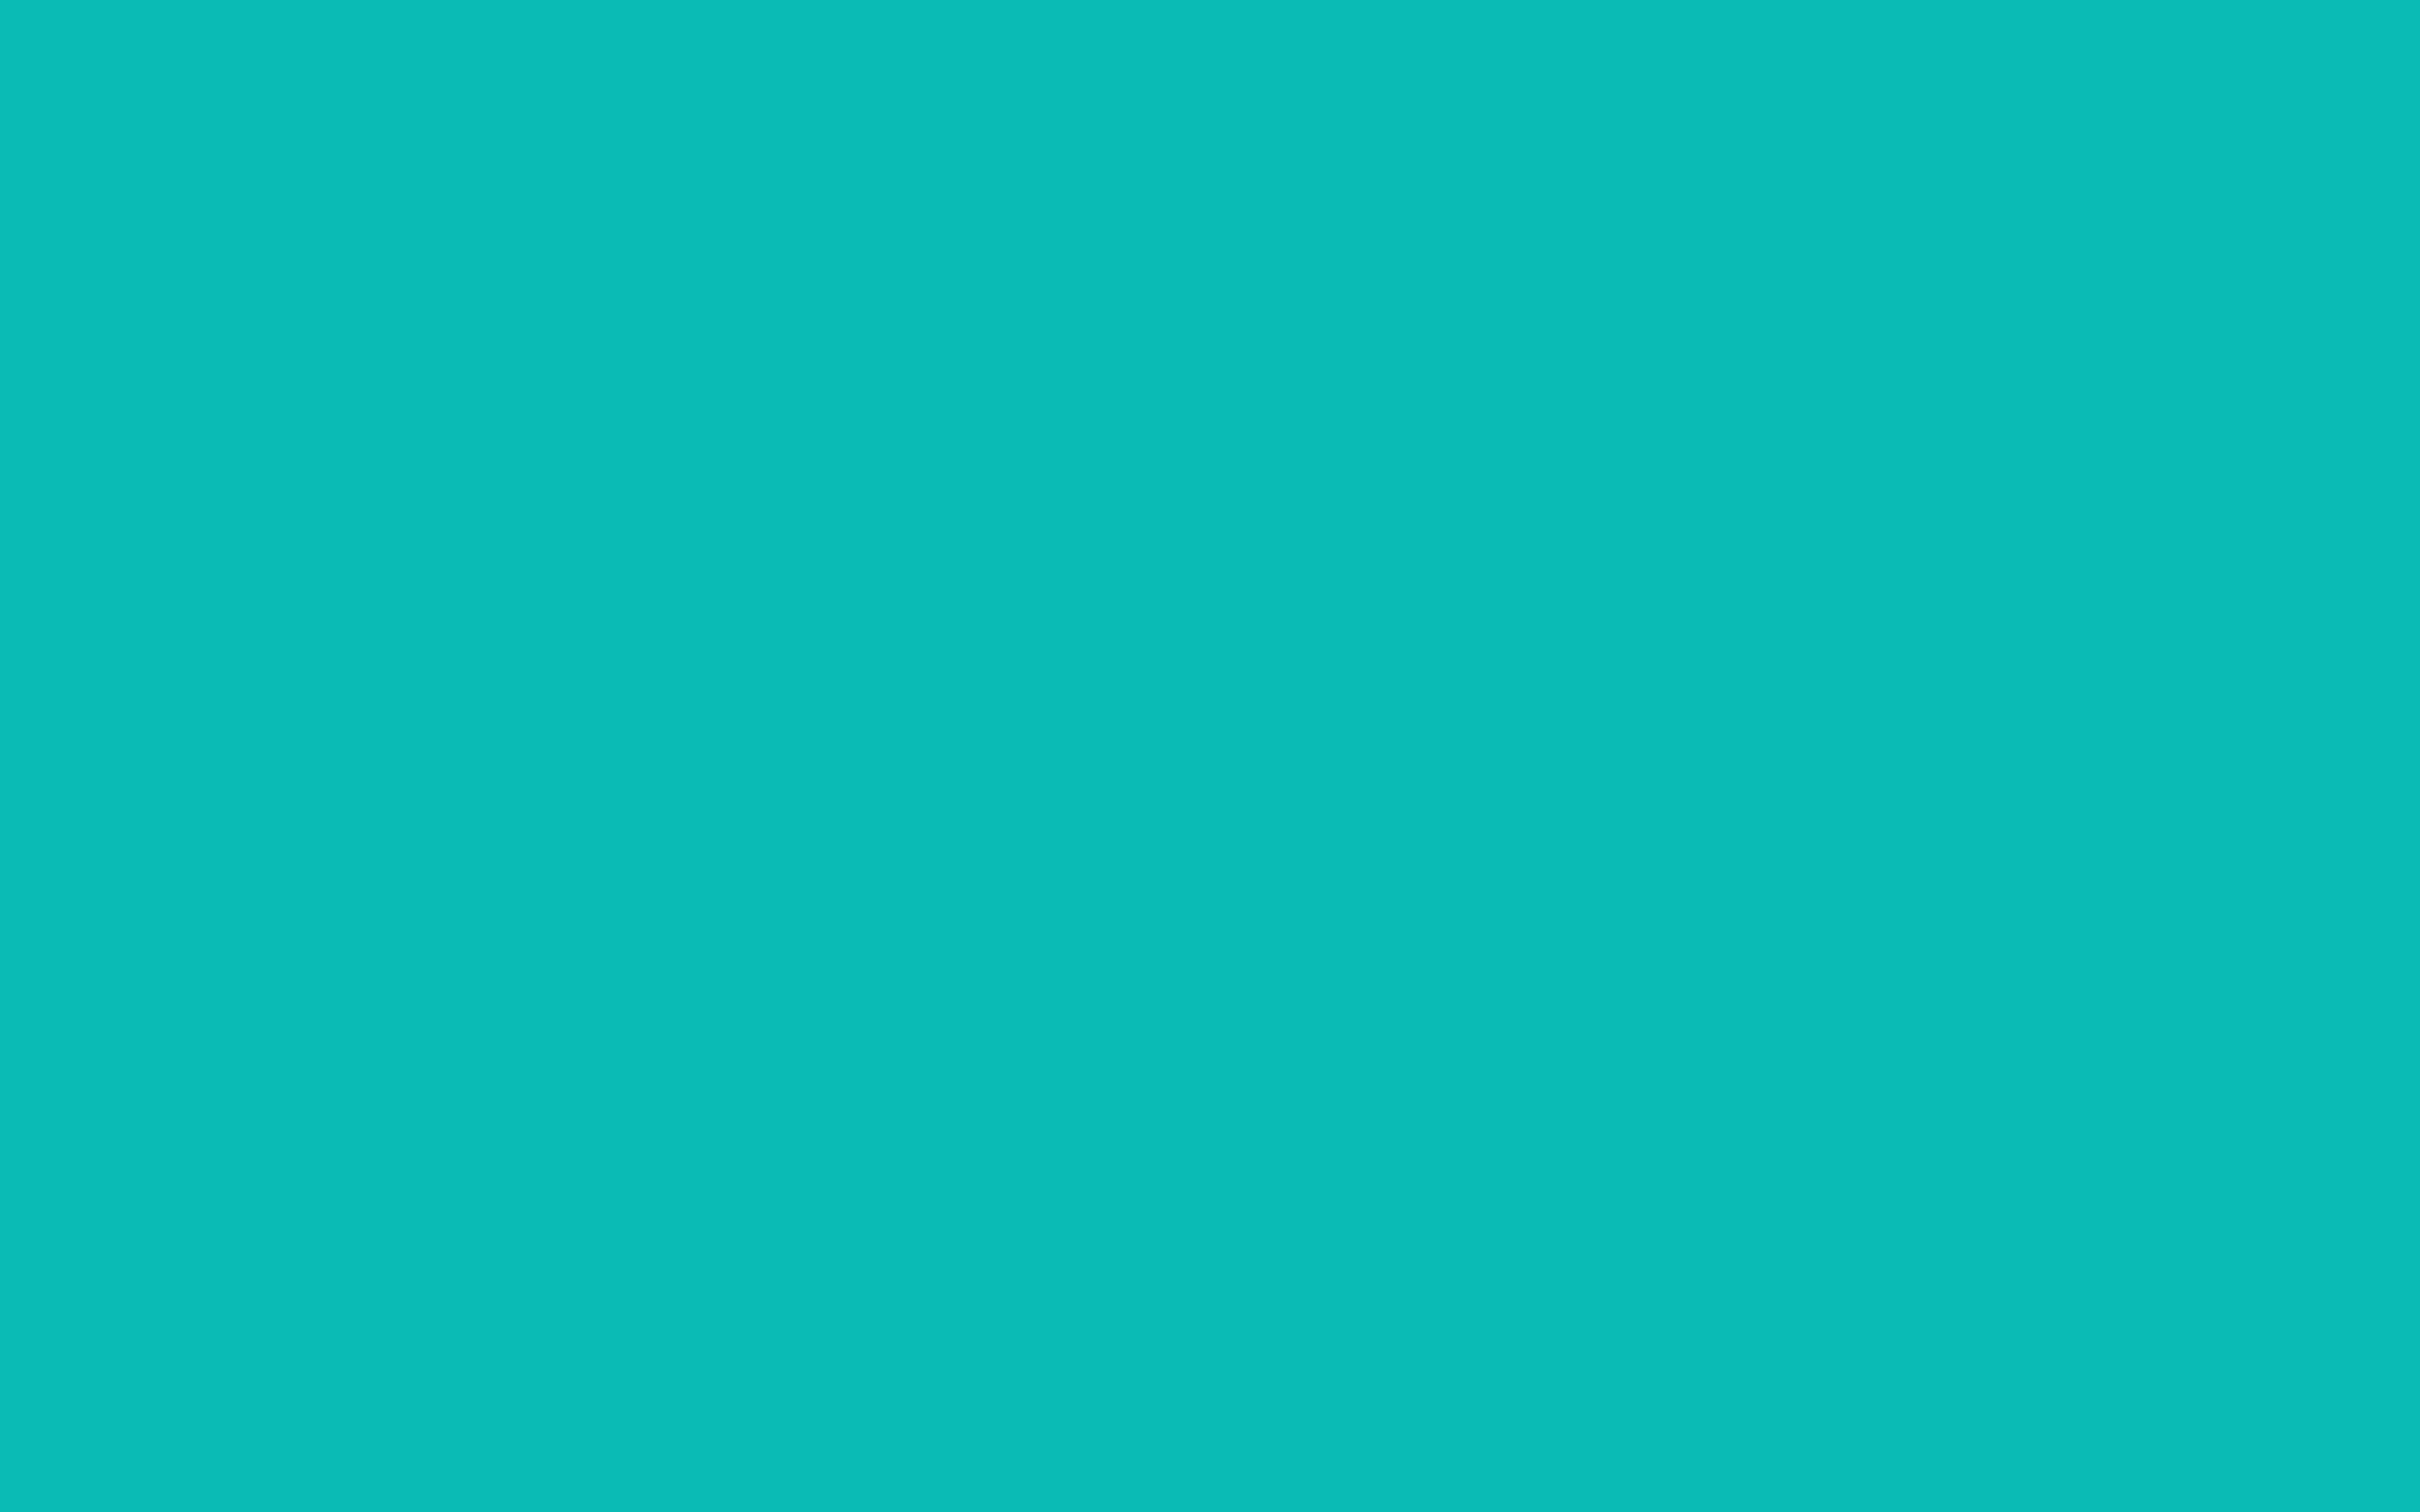 2880x1800 Solid Color 45244